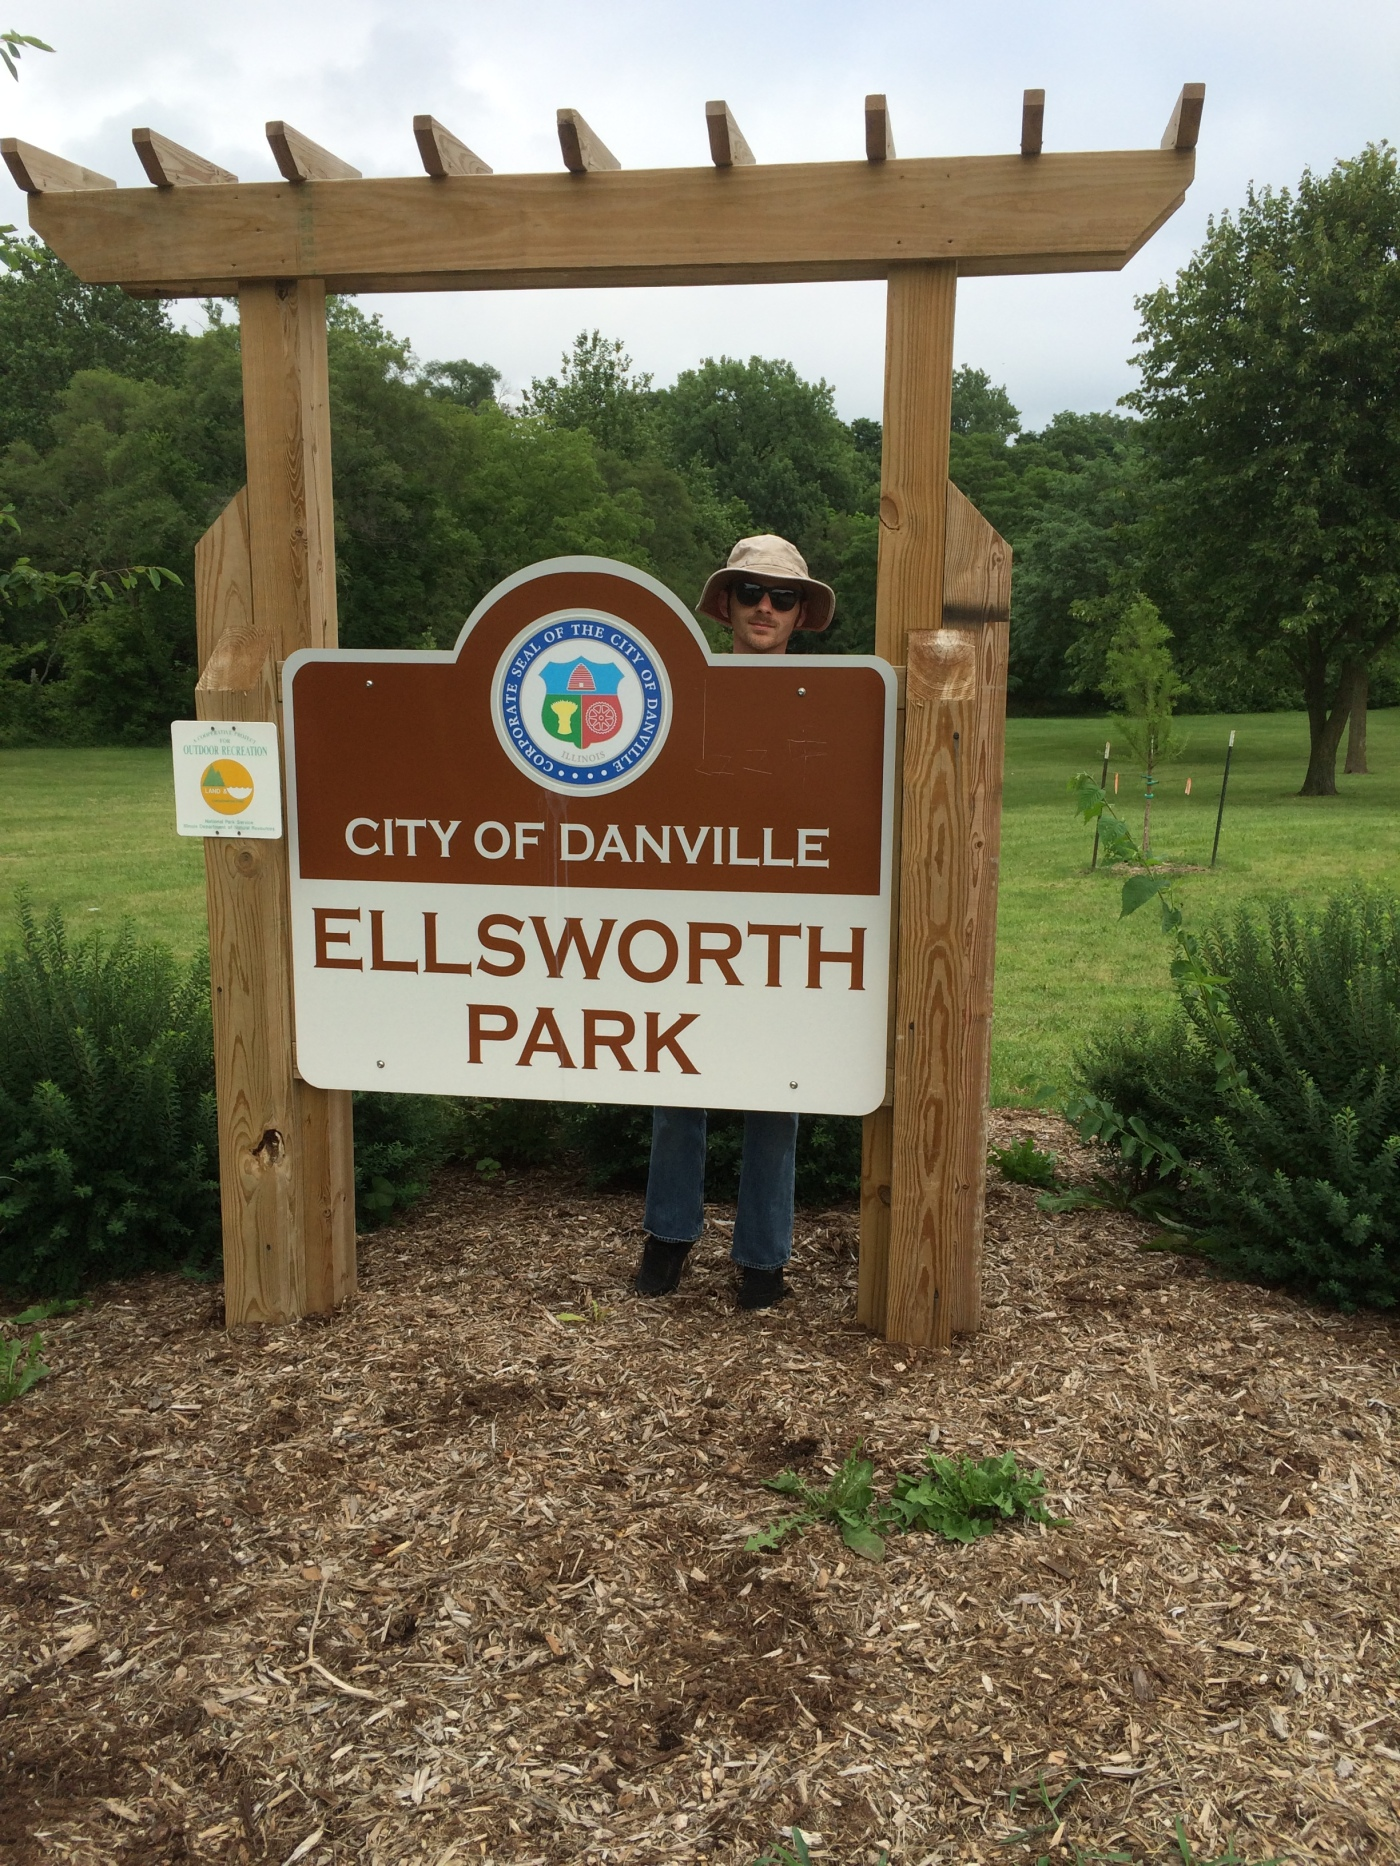 Ellsworth Park – Danville, IL – Get Out And Travel